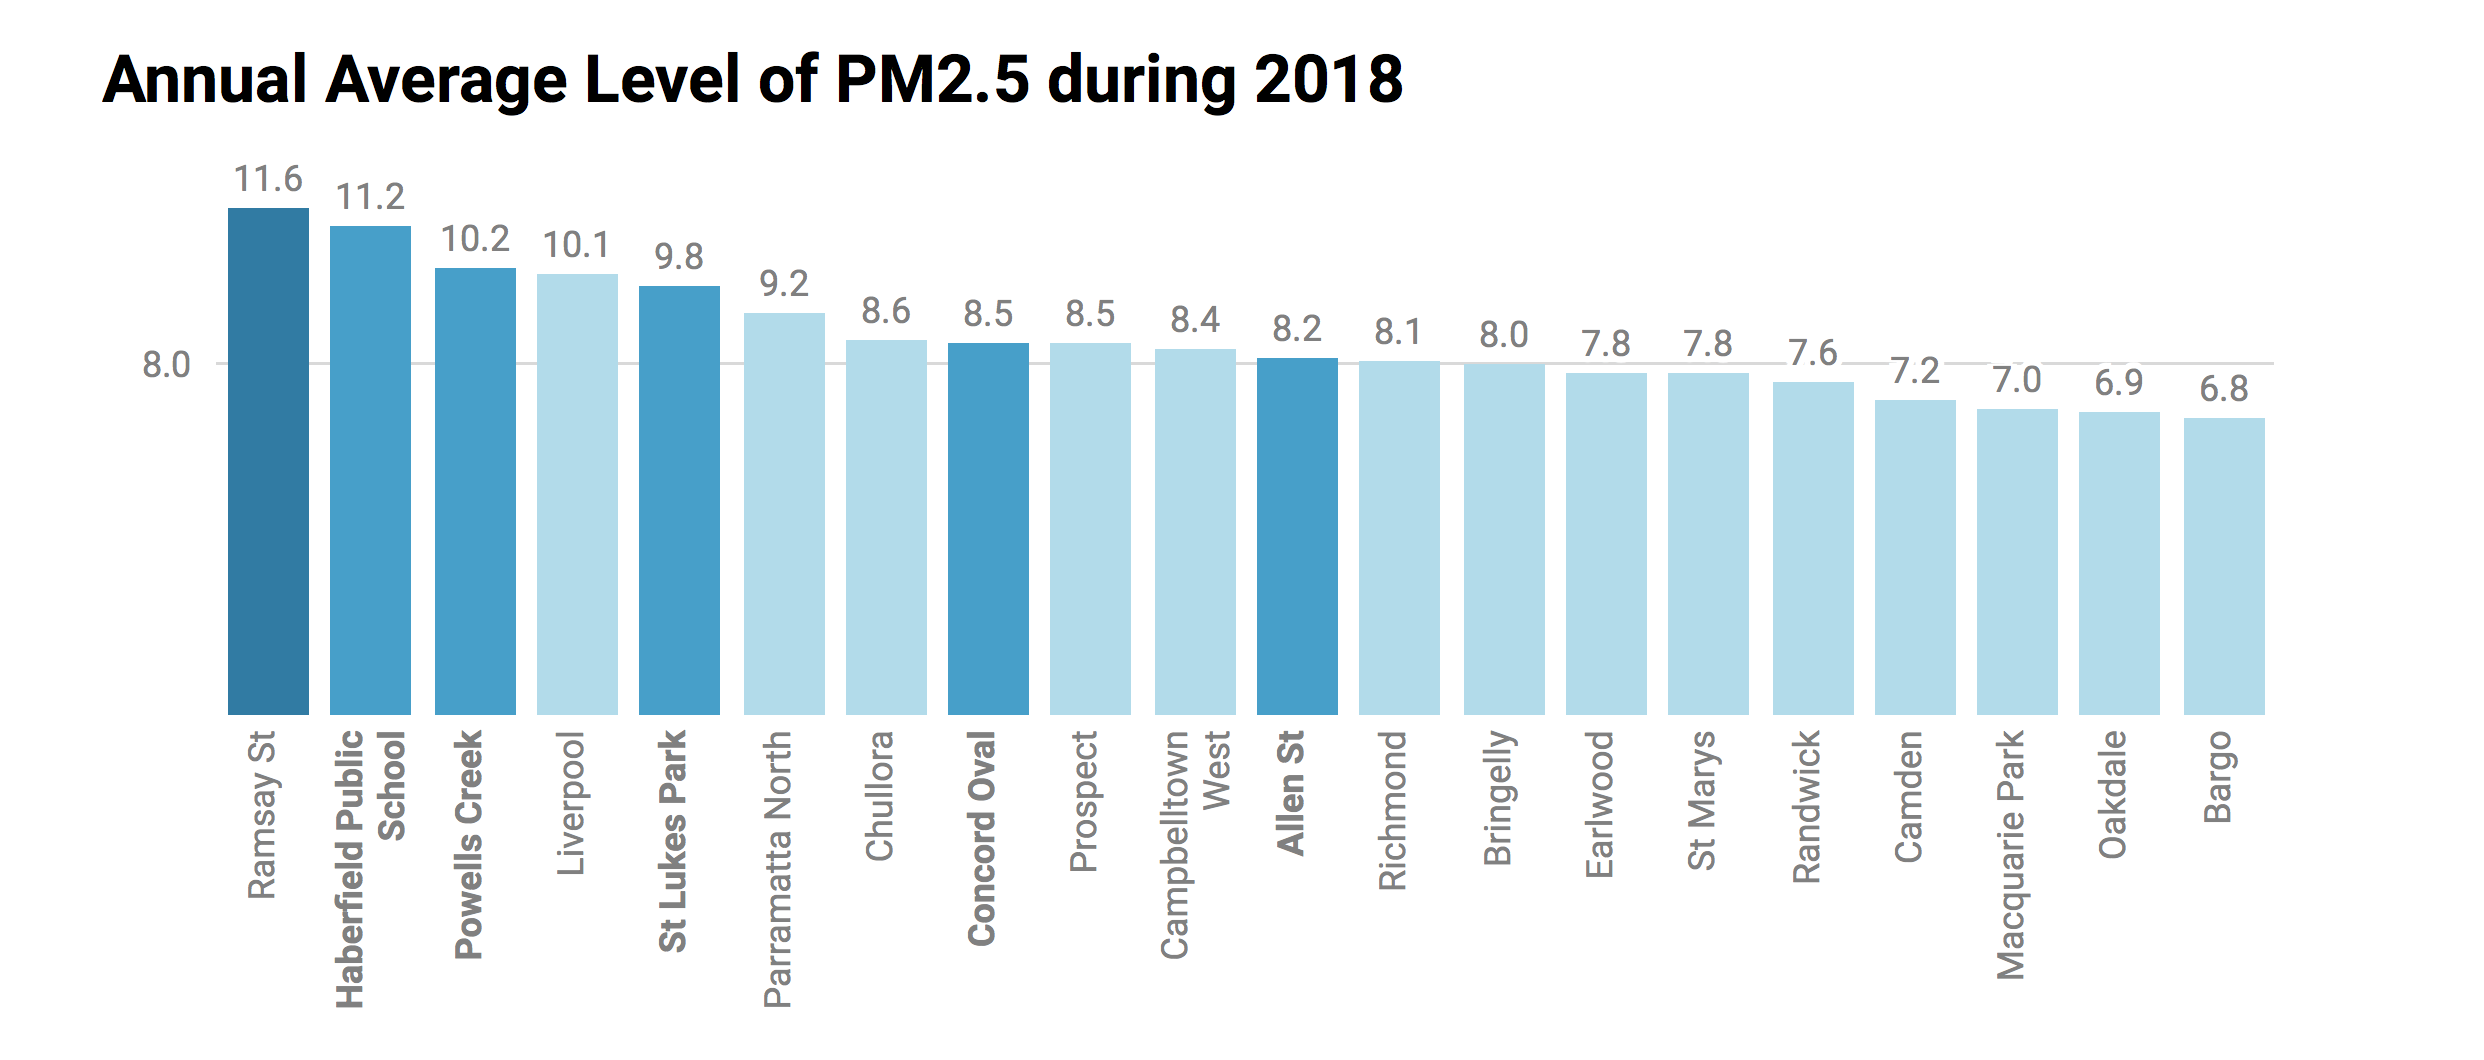 PM 2.5 air pollution levels in Sydney in 2018